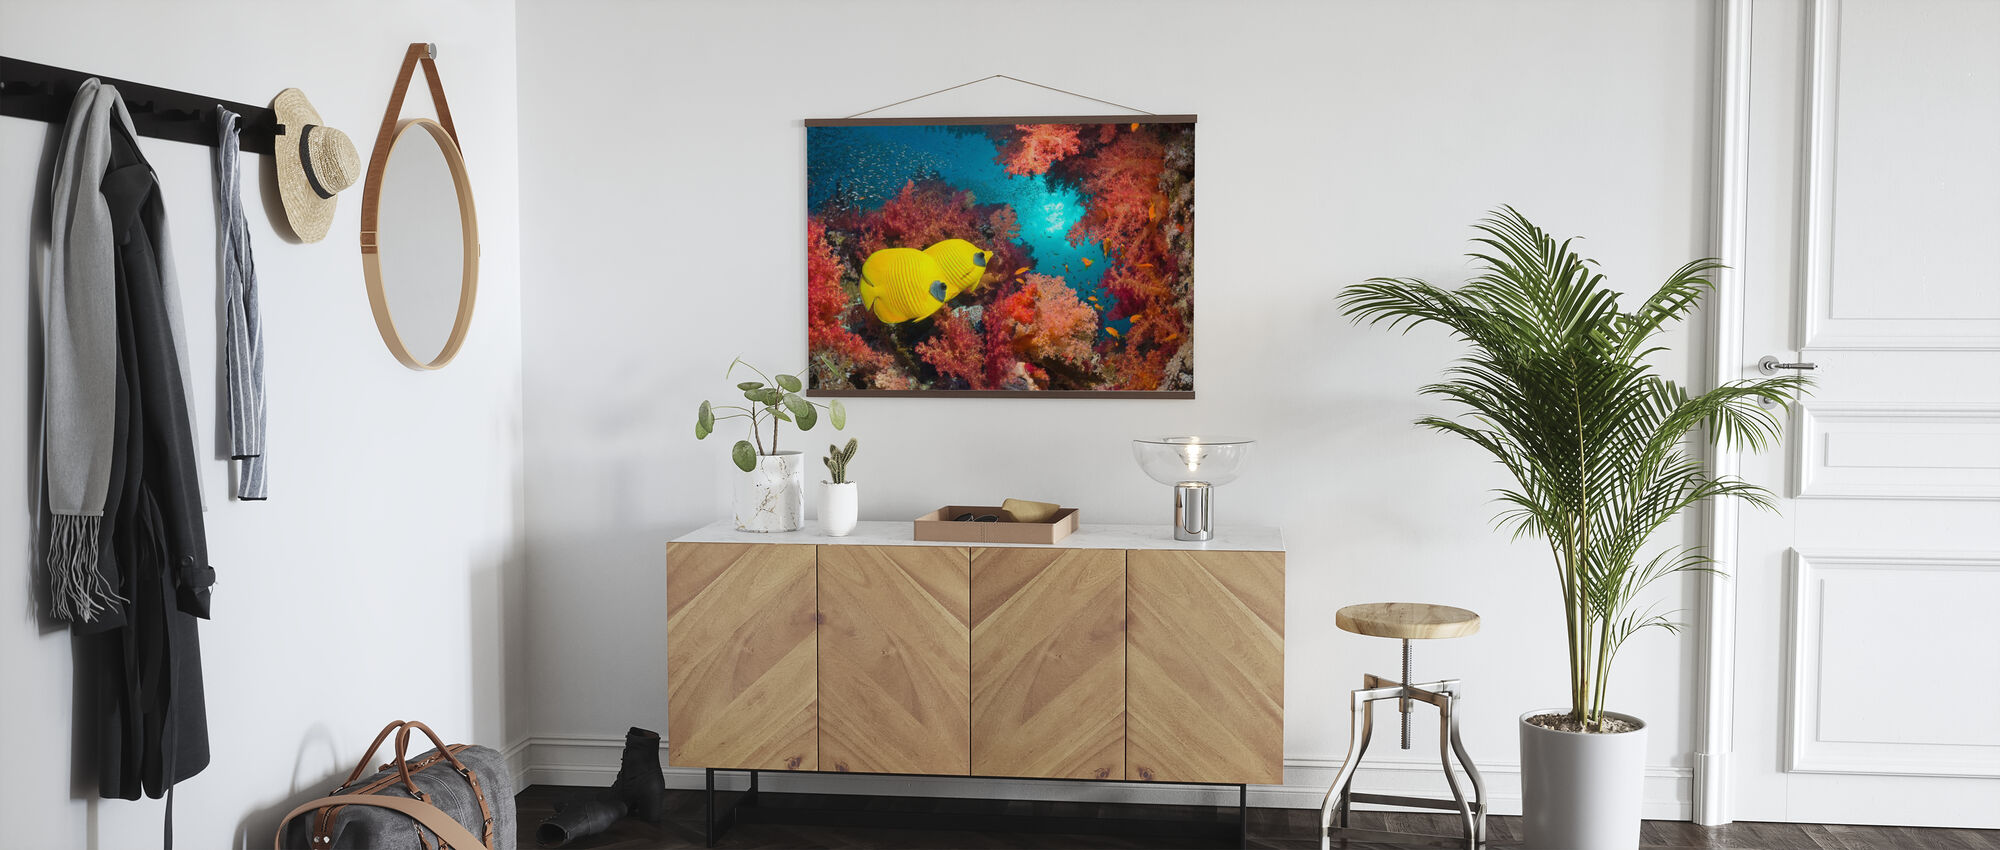 Butterfly Fish and Red Corals - Poster - Hallway